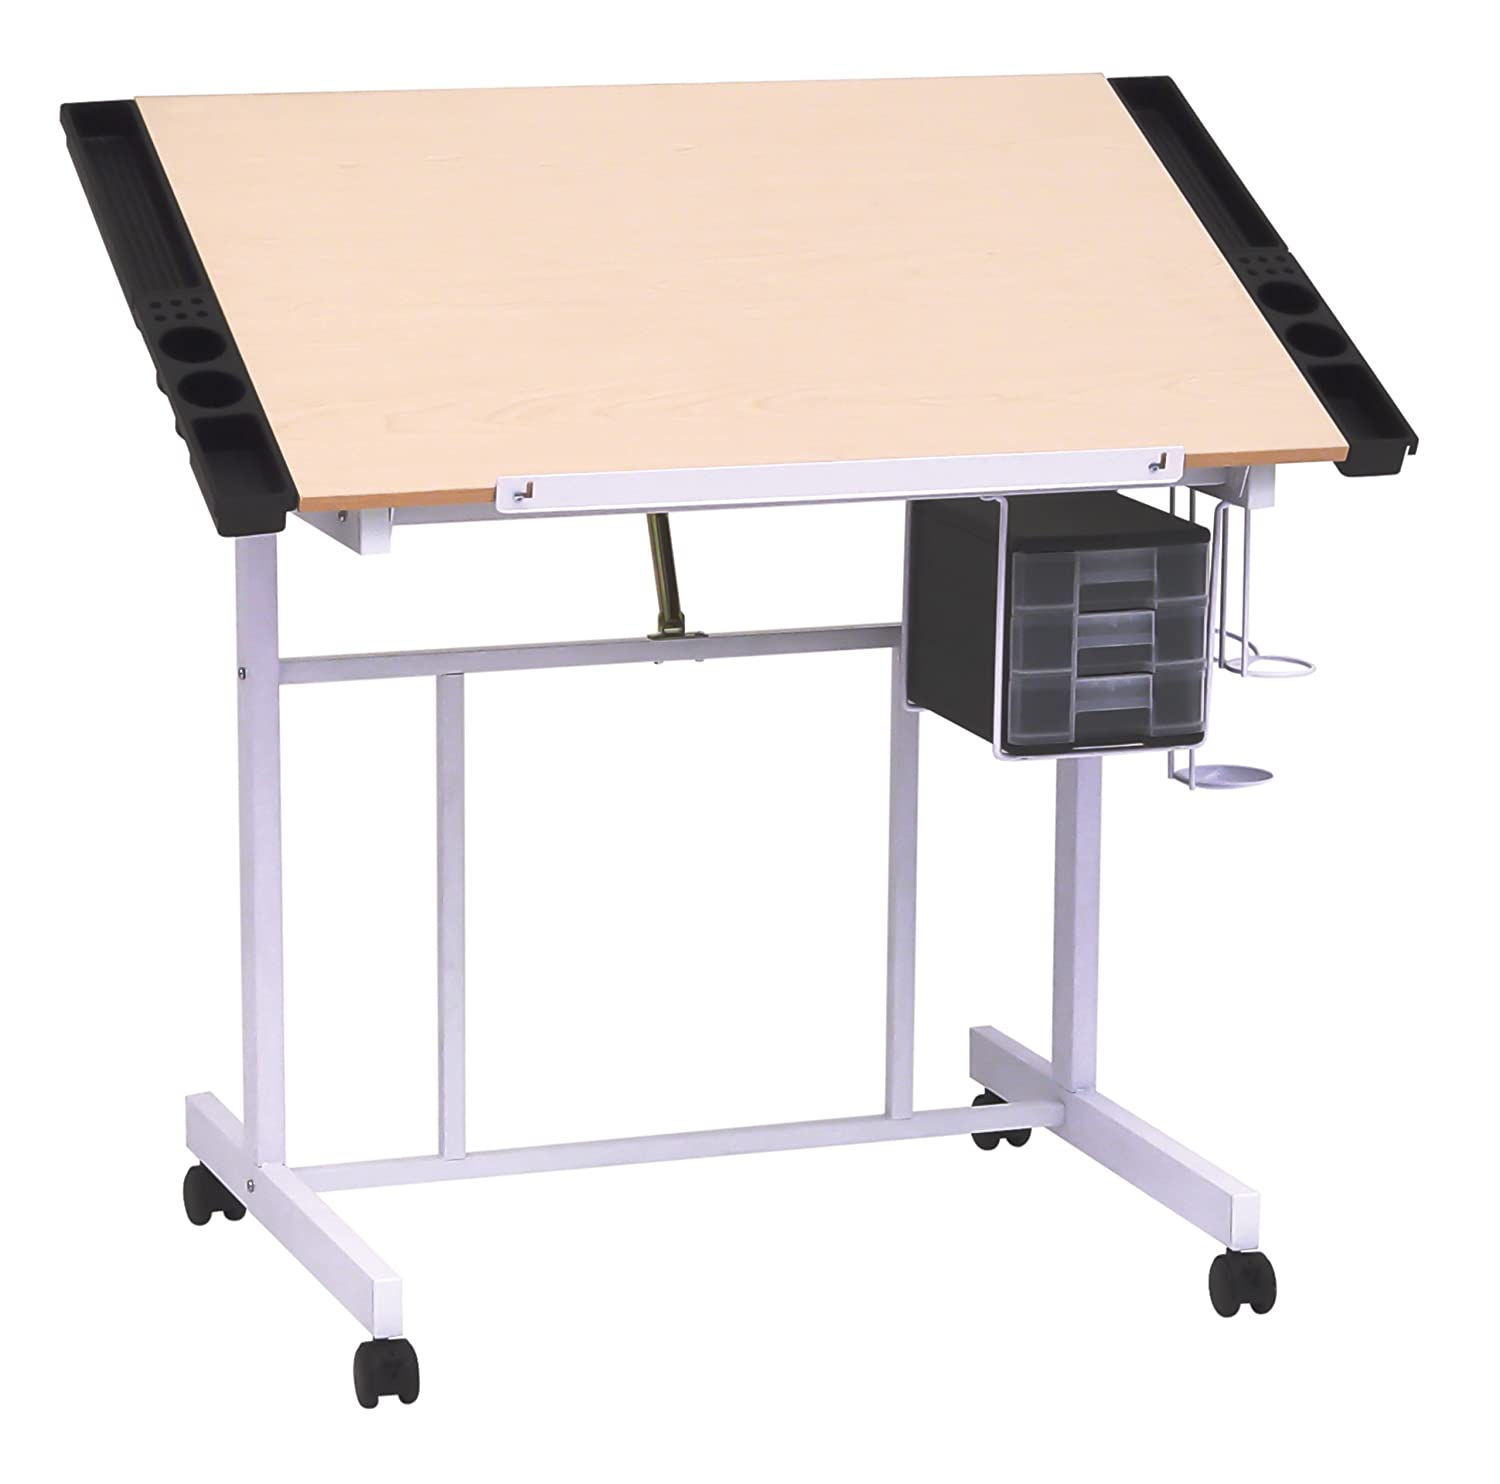 Deluxe Craft Station Large Work Surface Table Top Easily